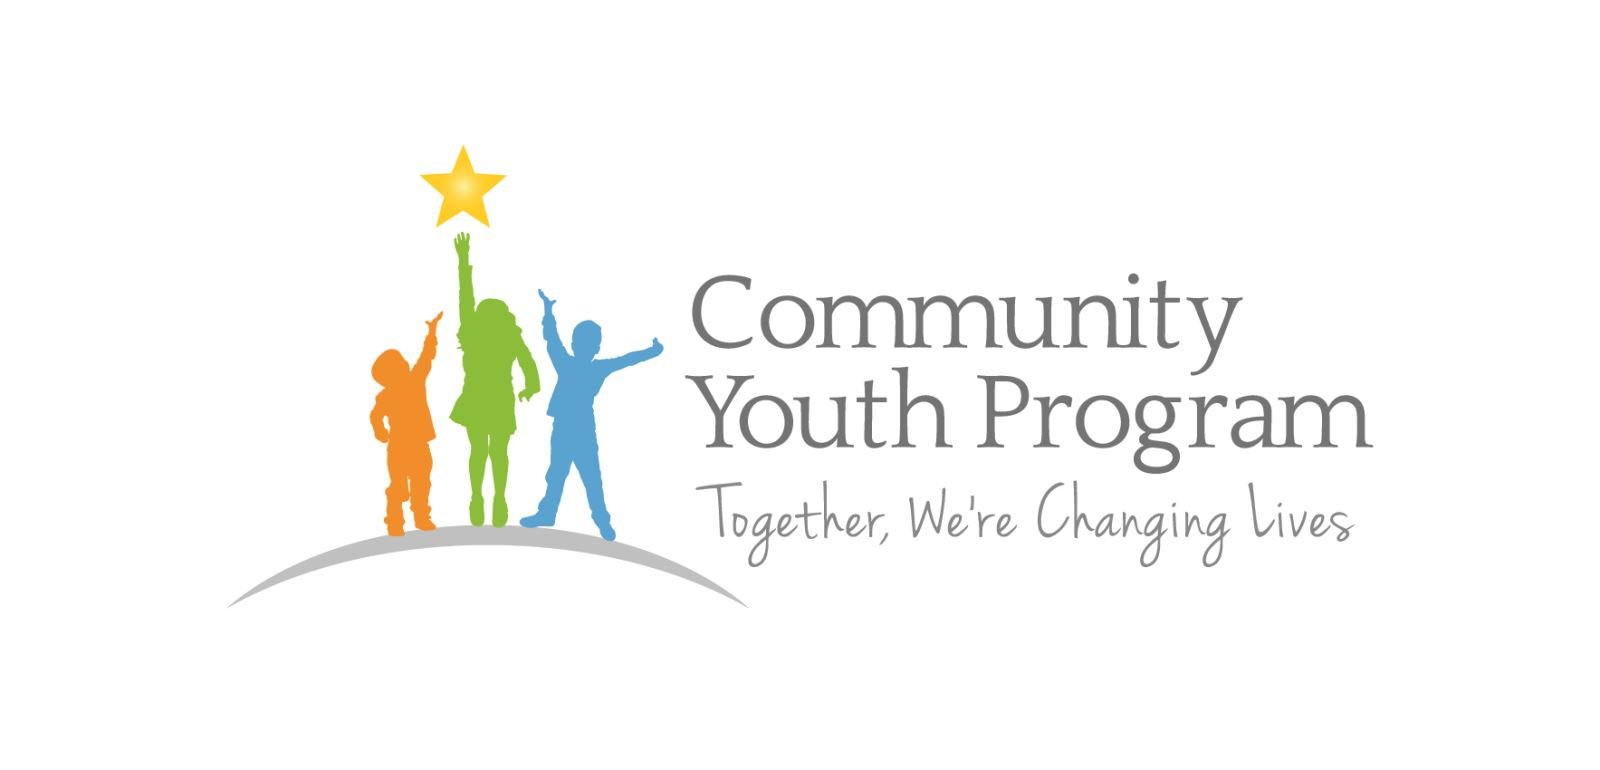 Community Youth Program